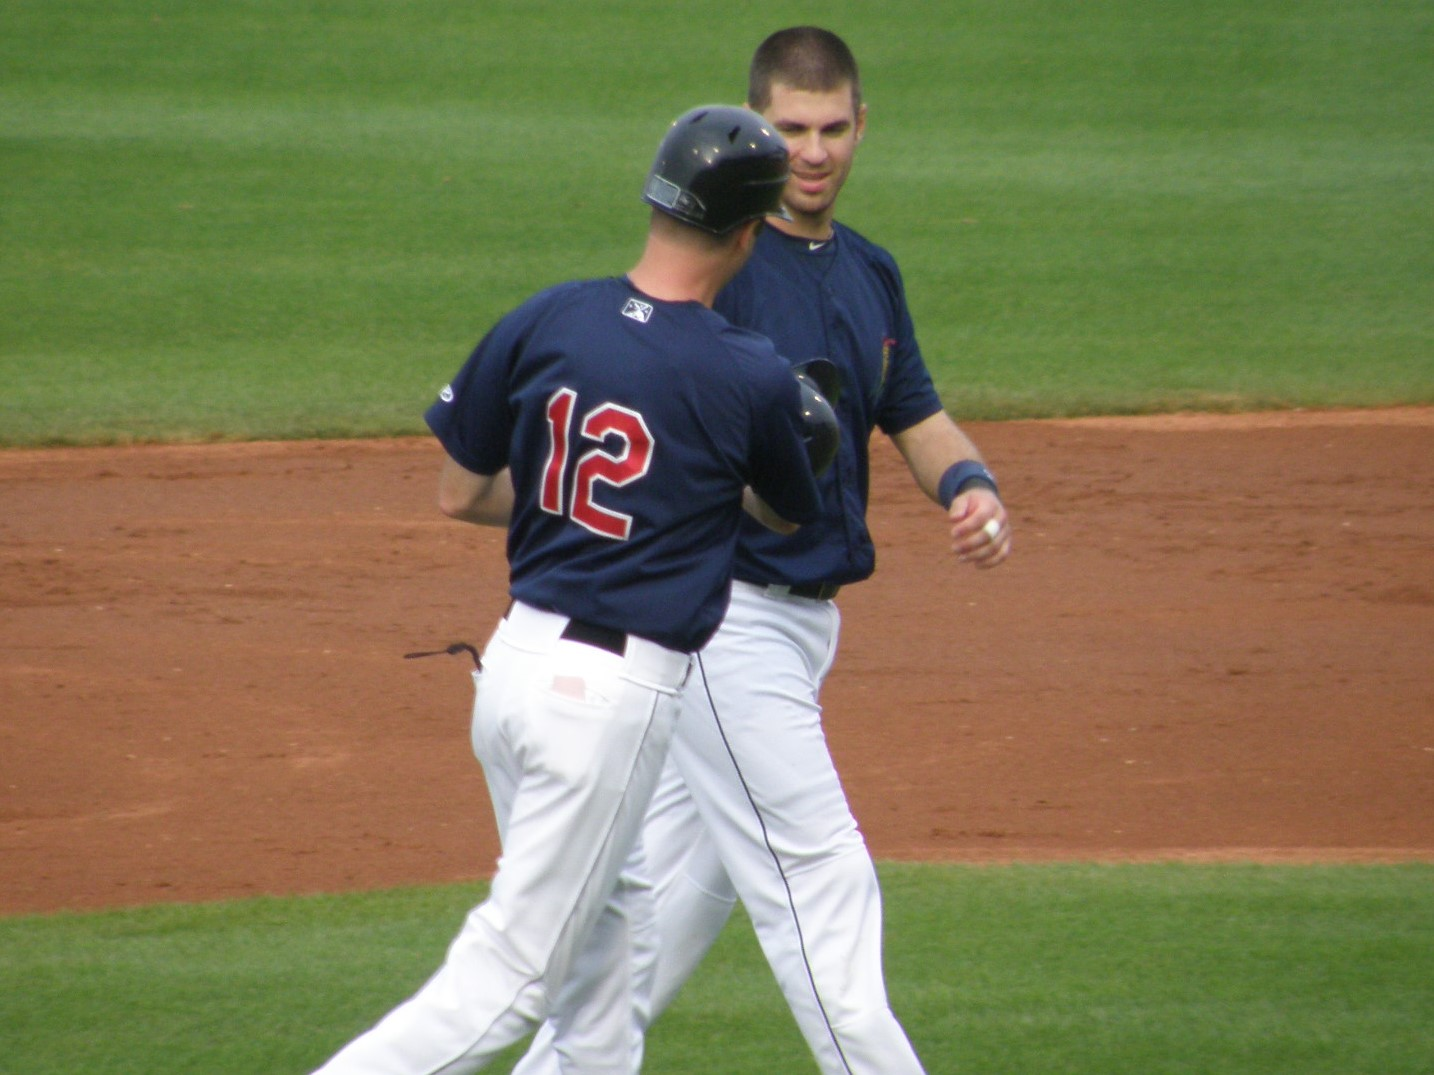 Jake Mauer picking up after his younger brother after Joe is left stranded at 2B